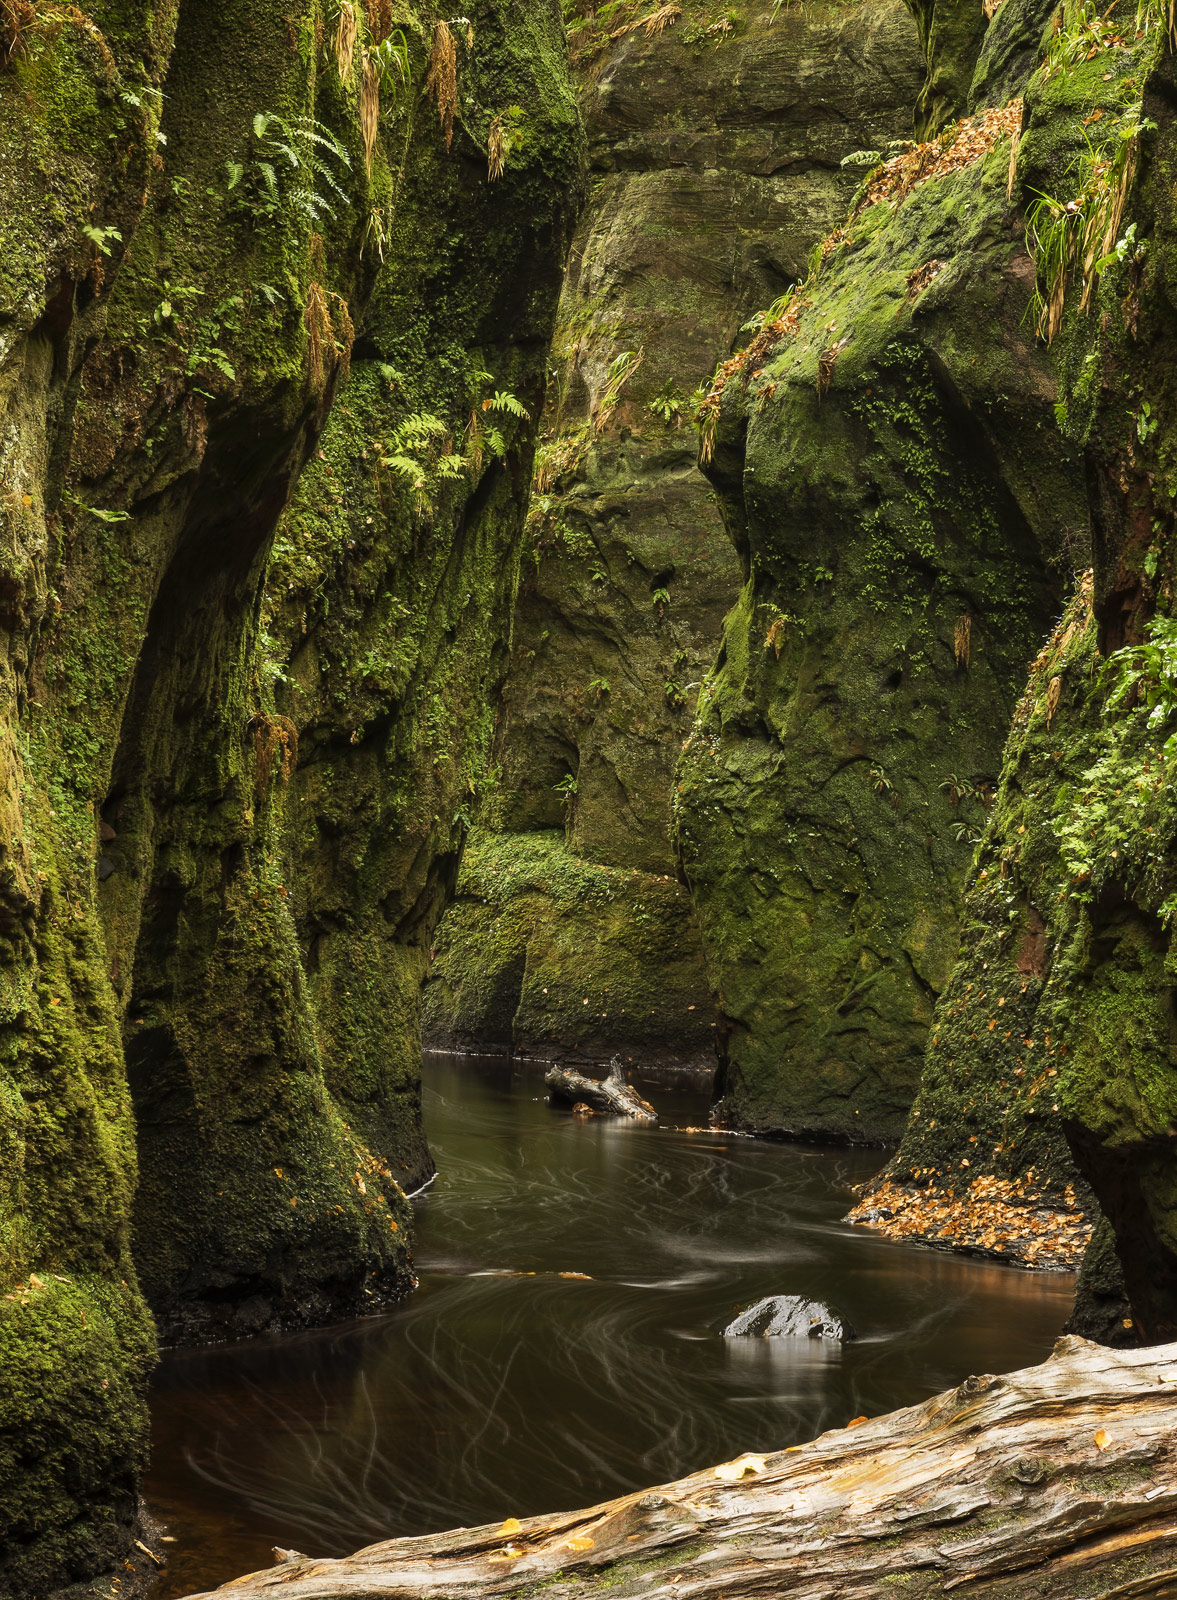 The emerald drapery in the Finnich Glen has to be seen to be beilieved.  A river meanders its way through it creating bubble...